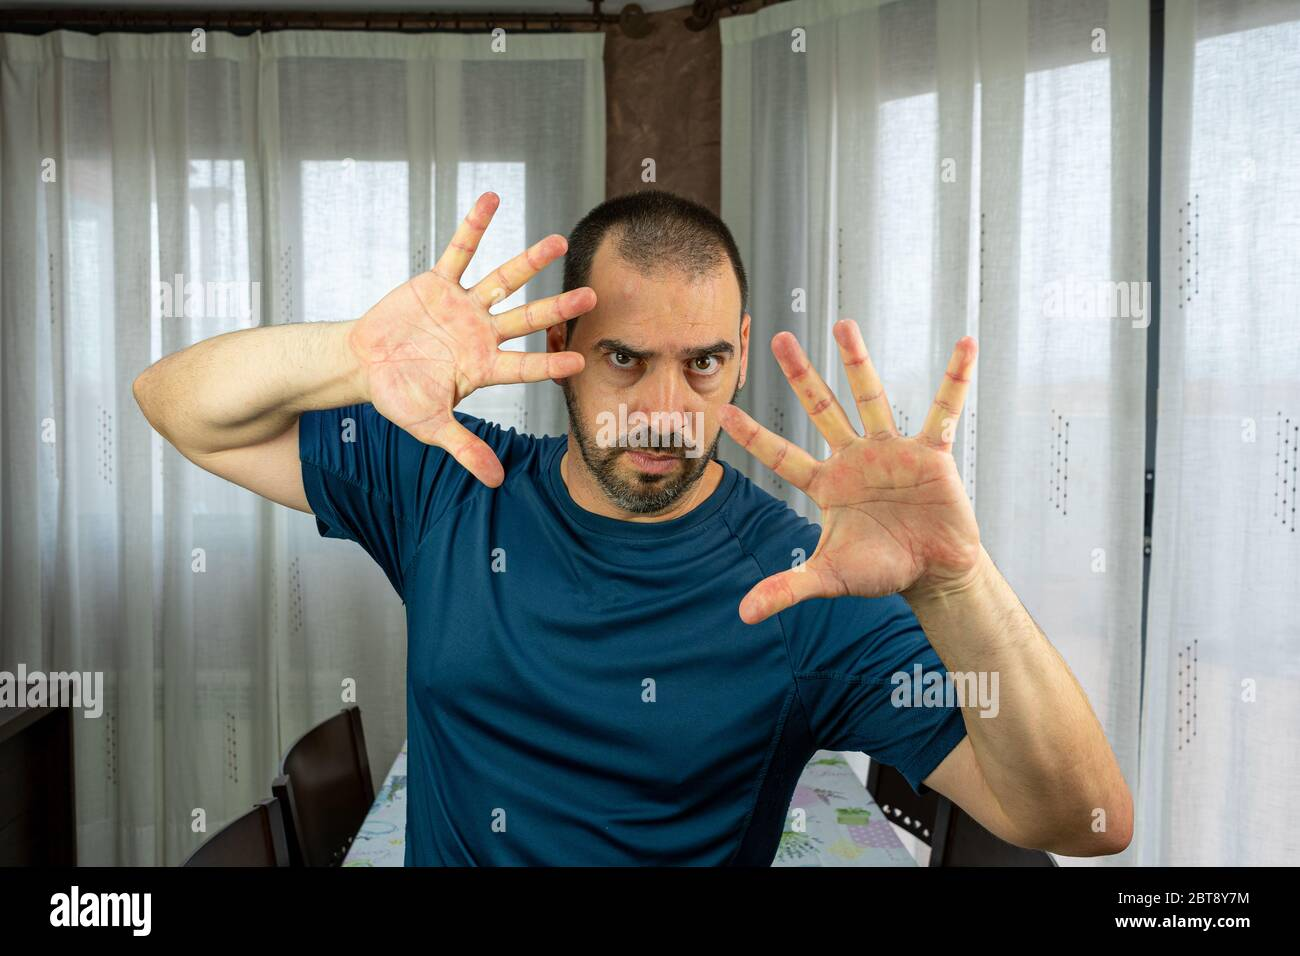 Bearded Man With Short Hair Dressed In A Dark Blue Shirt With Raised Hands As A Sing Of Protection In The Living Room At Home Security Concept Stock Photo Alamy